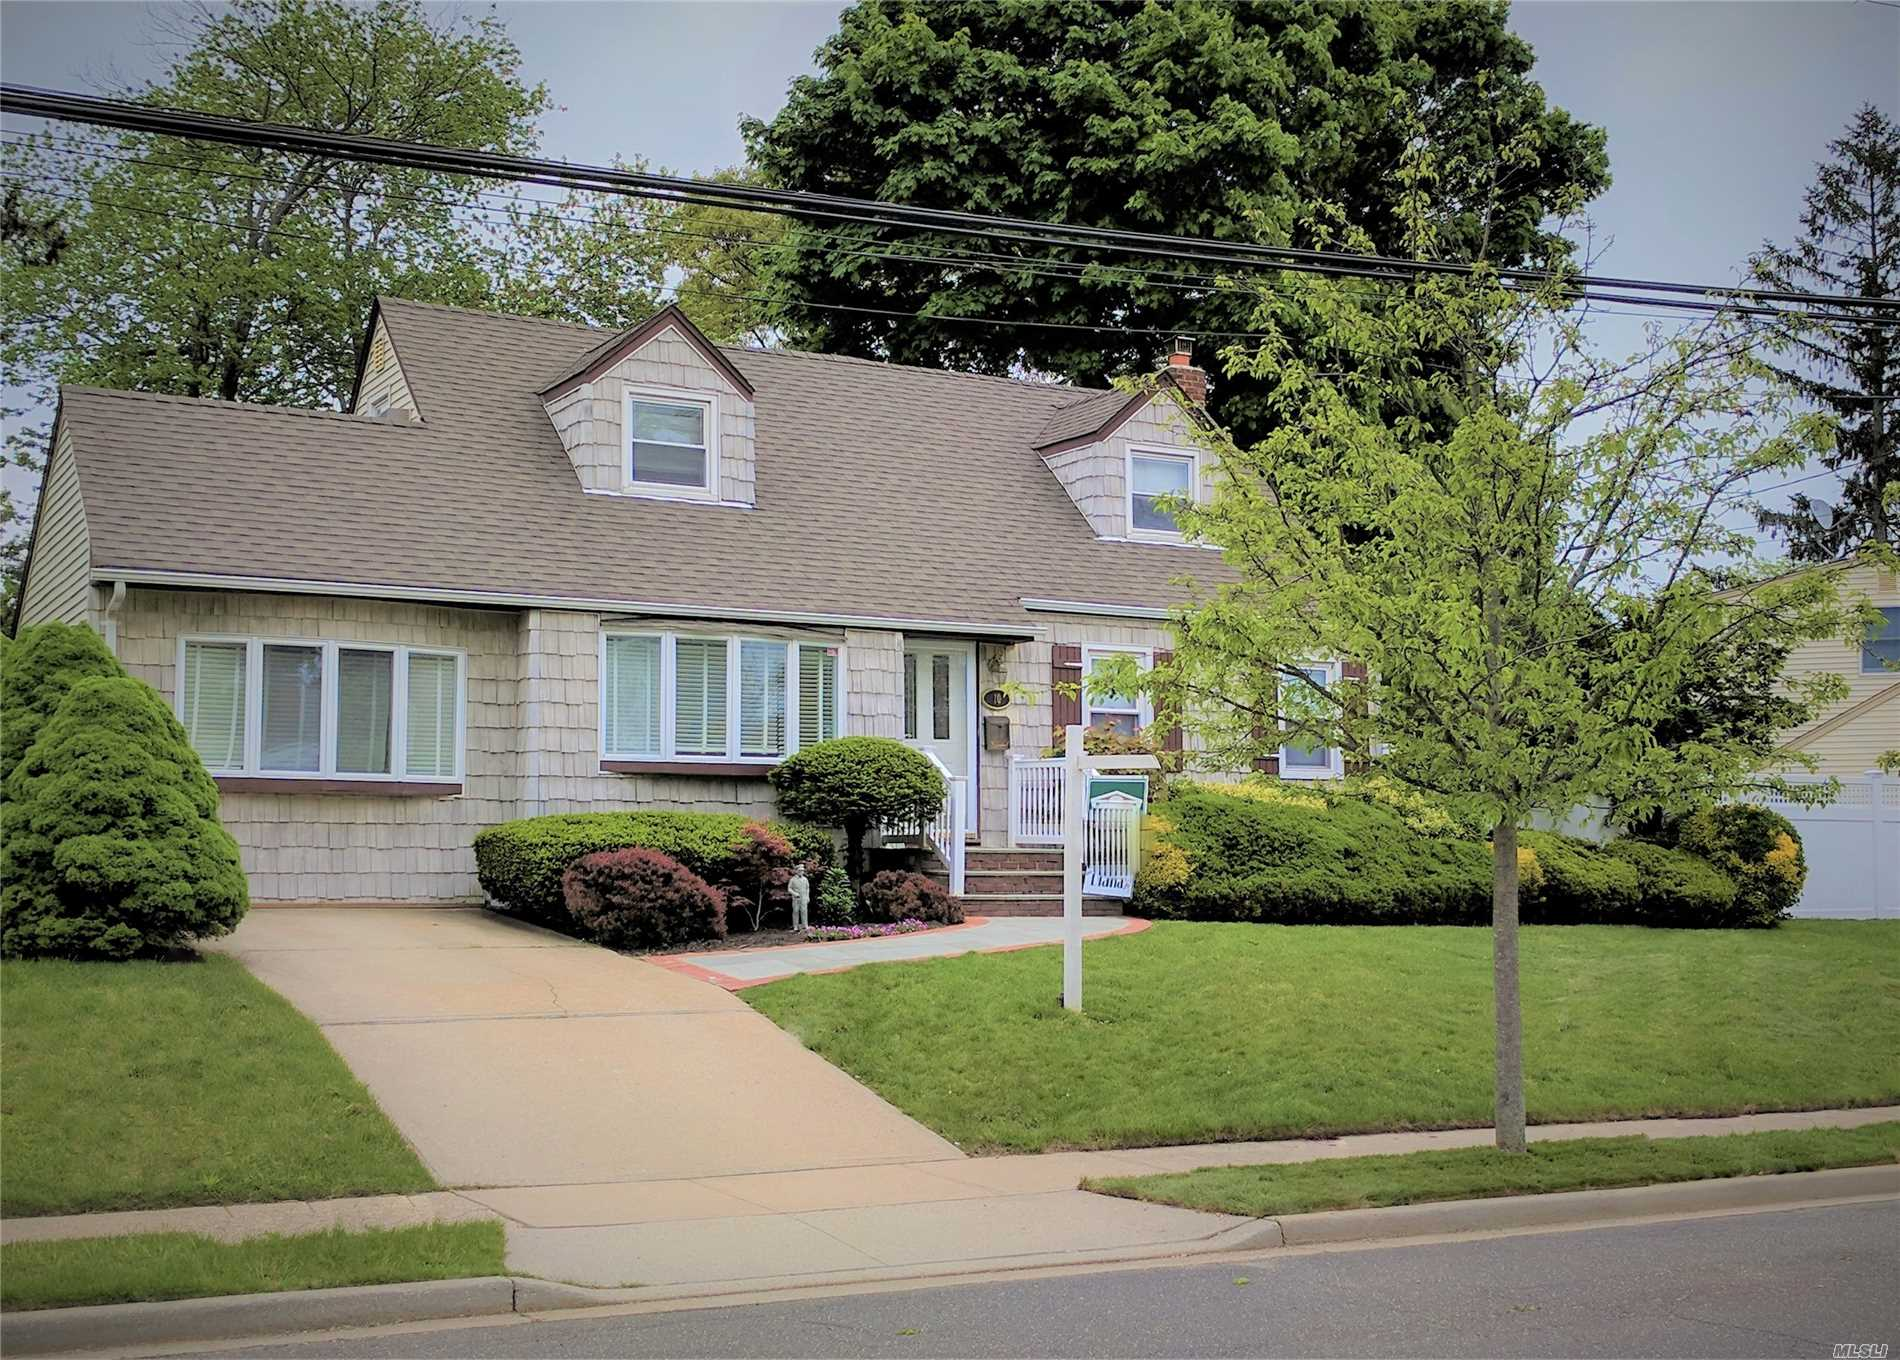 Updated, Expanded & Extended Cape In Mass Schools In Mass Pk (Not Village). The Extended Kitchen & Main Level Den Make Wonderfully Spacious Living Spaces. Many Updates Include Fresh Paint, Fixtures, Floors, Hi Hats, Kitchen, Bathrooms & More. The Fully Fenced Yard, Large Deck & Shed = Pleasant Outdoor Living. Conv To Marjorie Post Park Walk In Entrance. Low Taxes Verified W/All C.O.S In Place. Unqua Elementary. Wall Opened To Make Huge Master But Could Be Back To 4 Bedrooms.